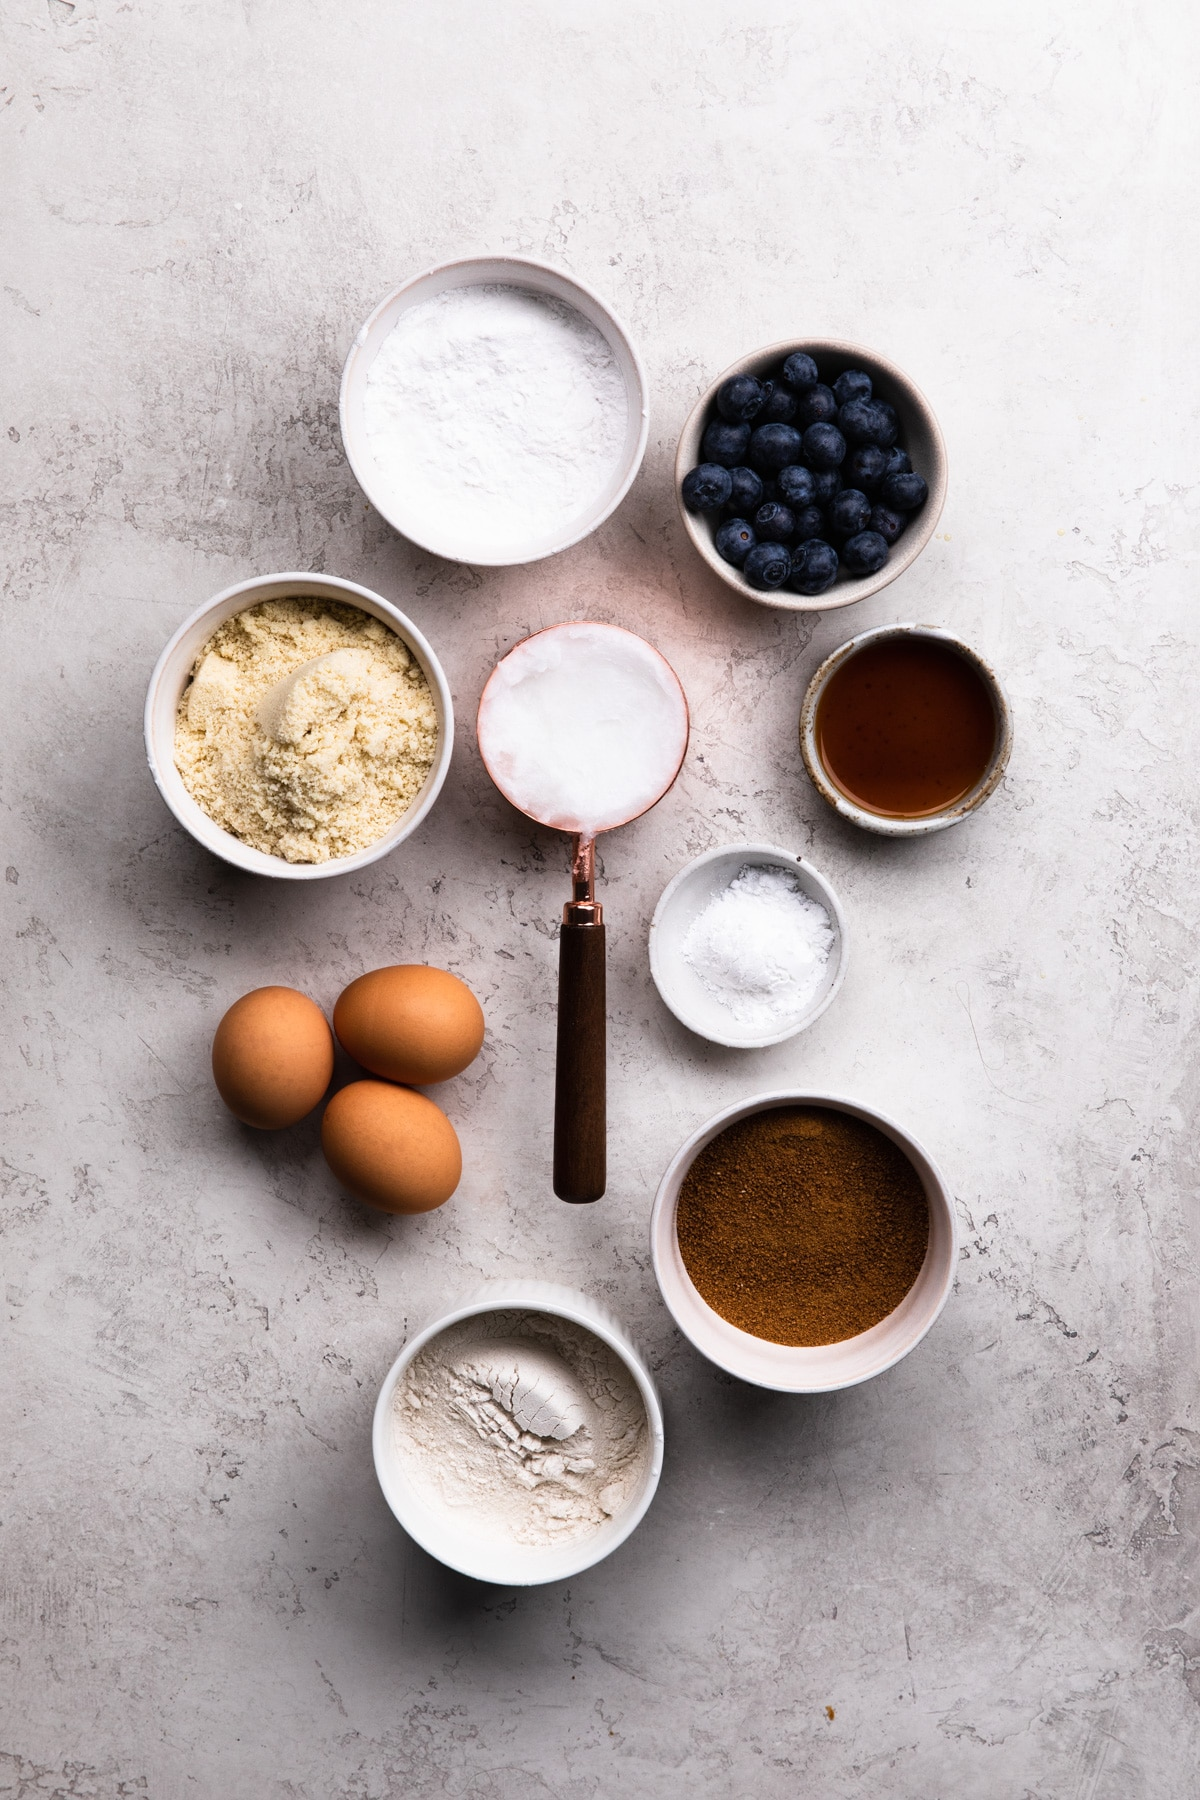 ingredients for baked blueberry donuts